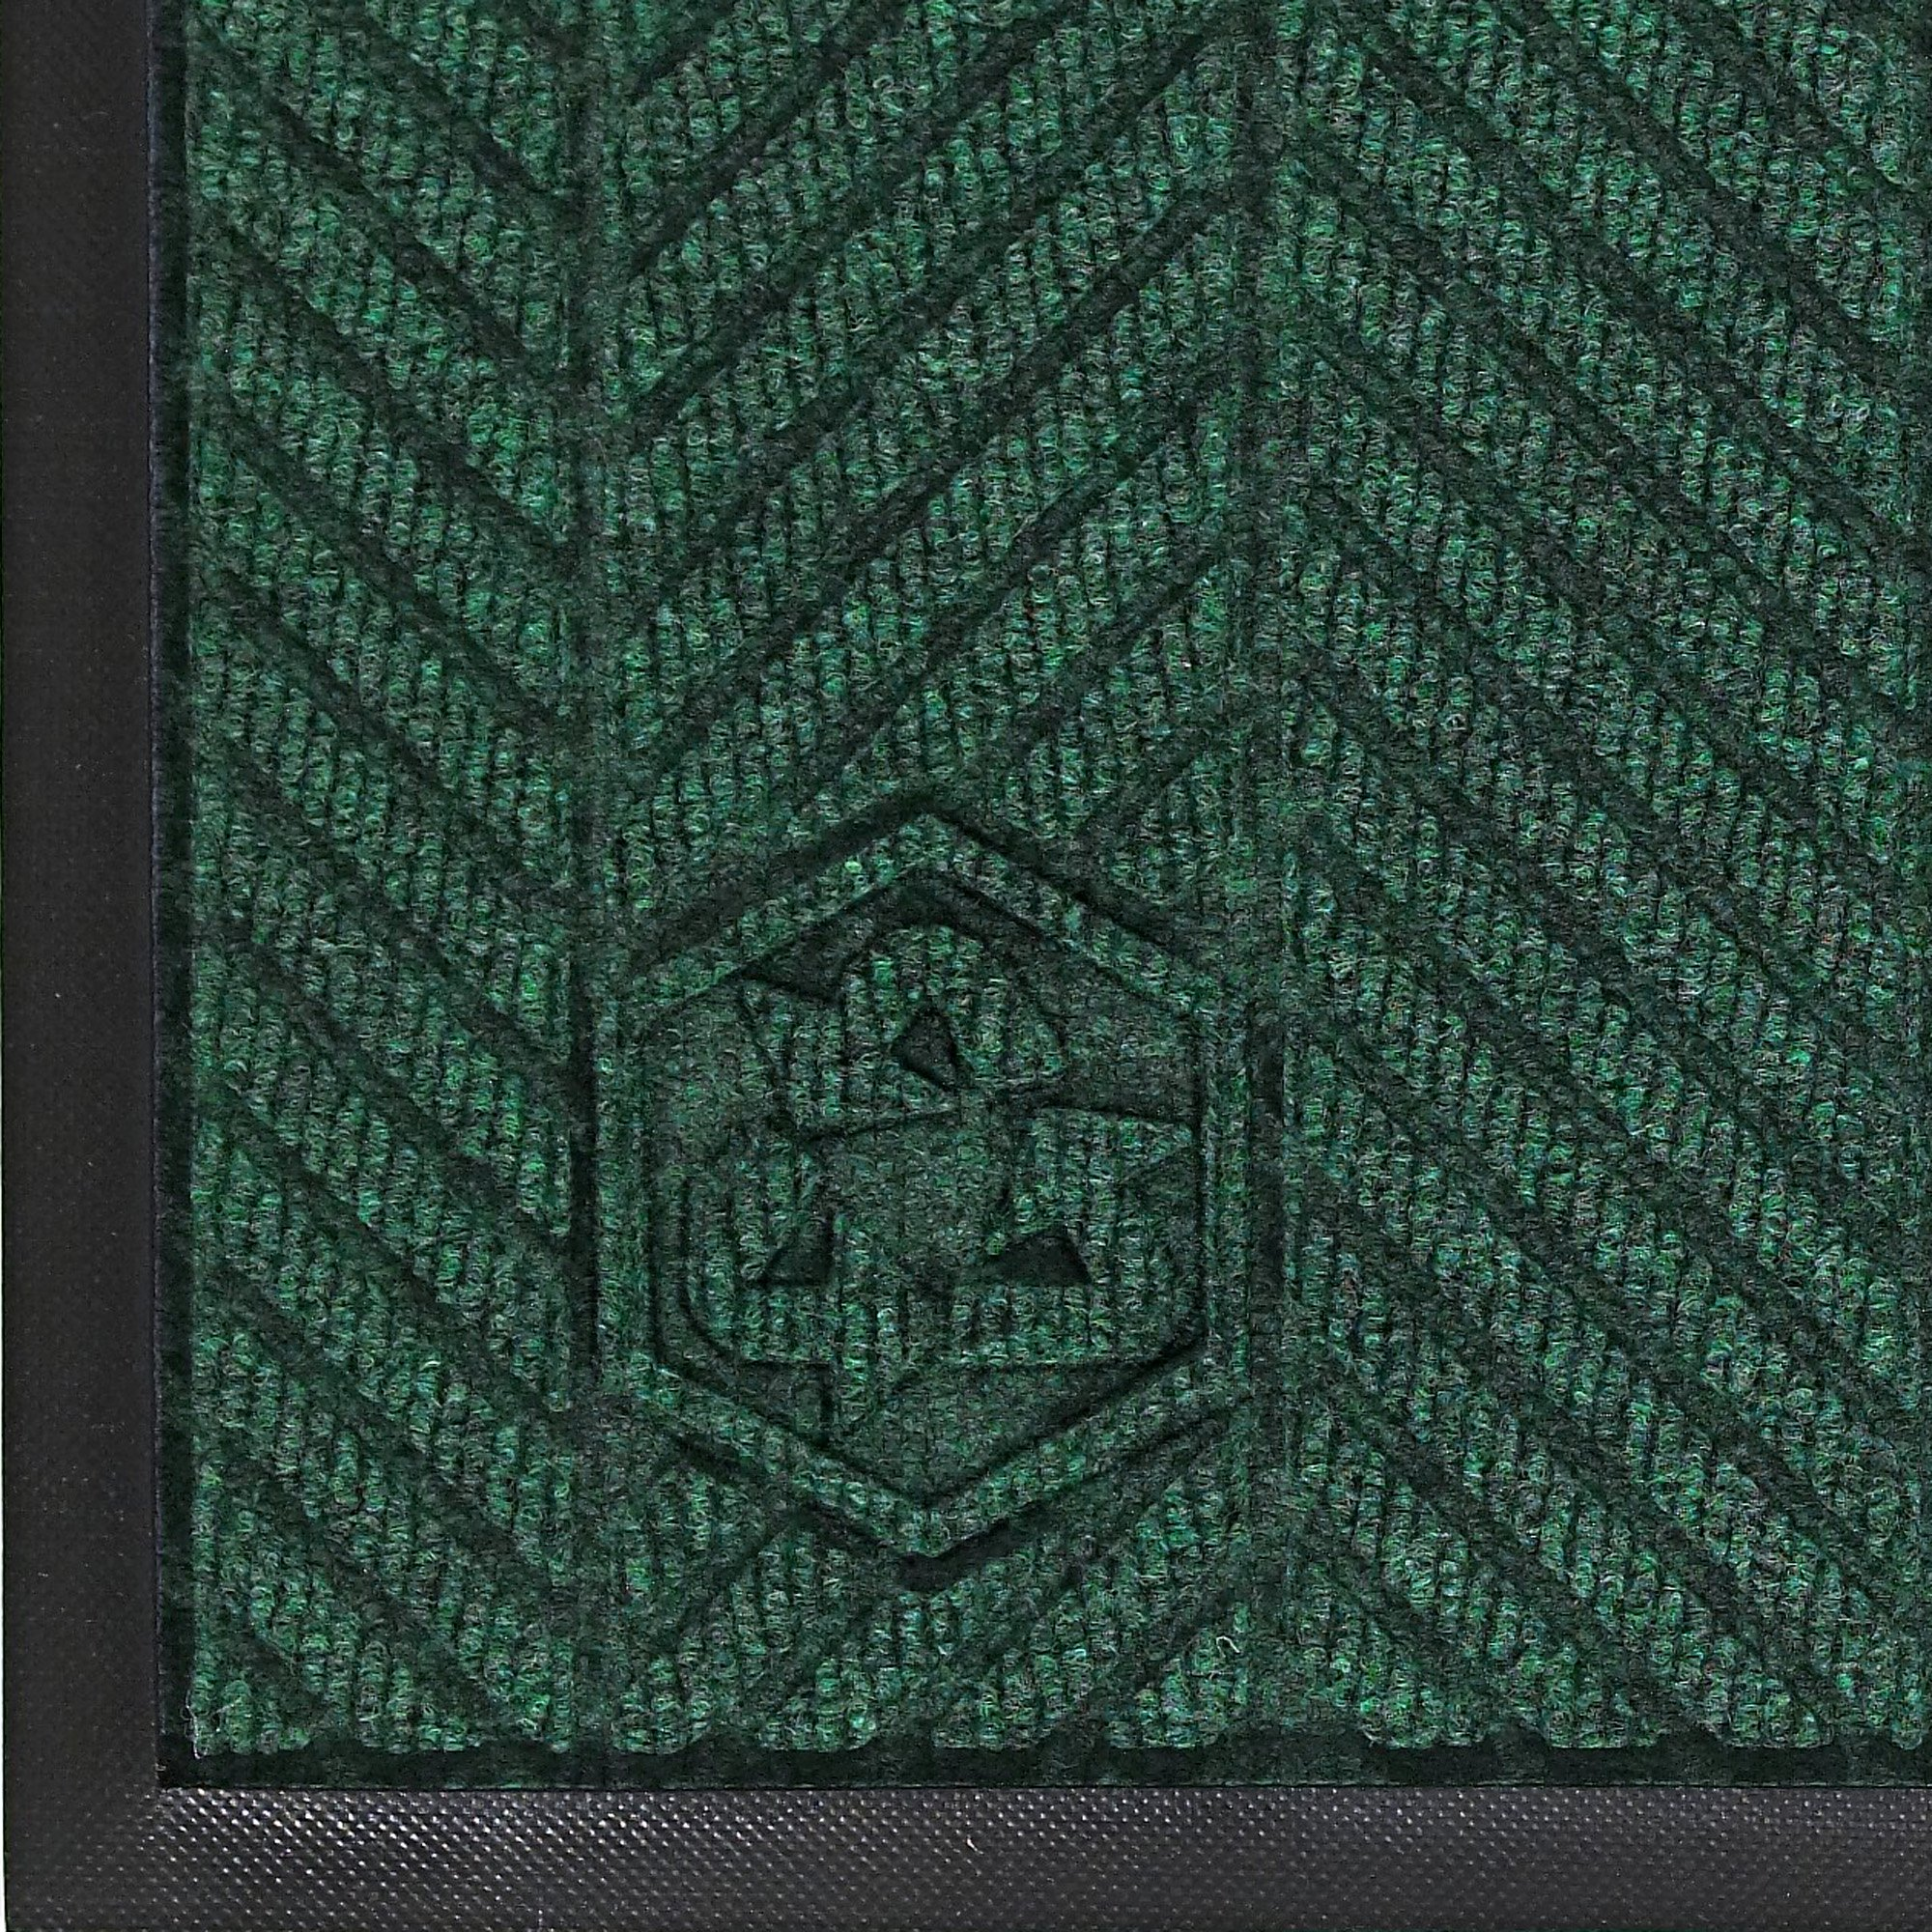 M+A Matting 2240 Waterhog Classic ECO Elite PET Polyester Entrance Indoor Floor Mat, SBR Rubber Backing, 3' Length x 2' Width, 3/8'' Thick, Southern Pine